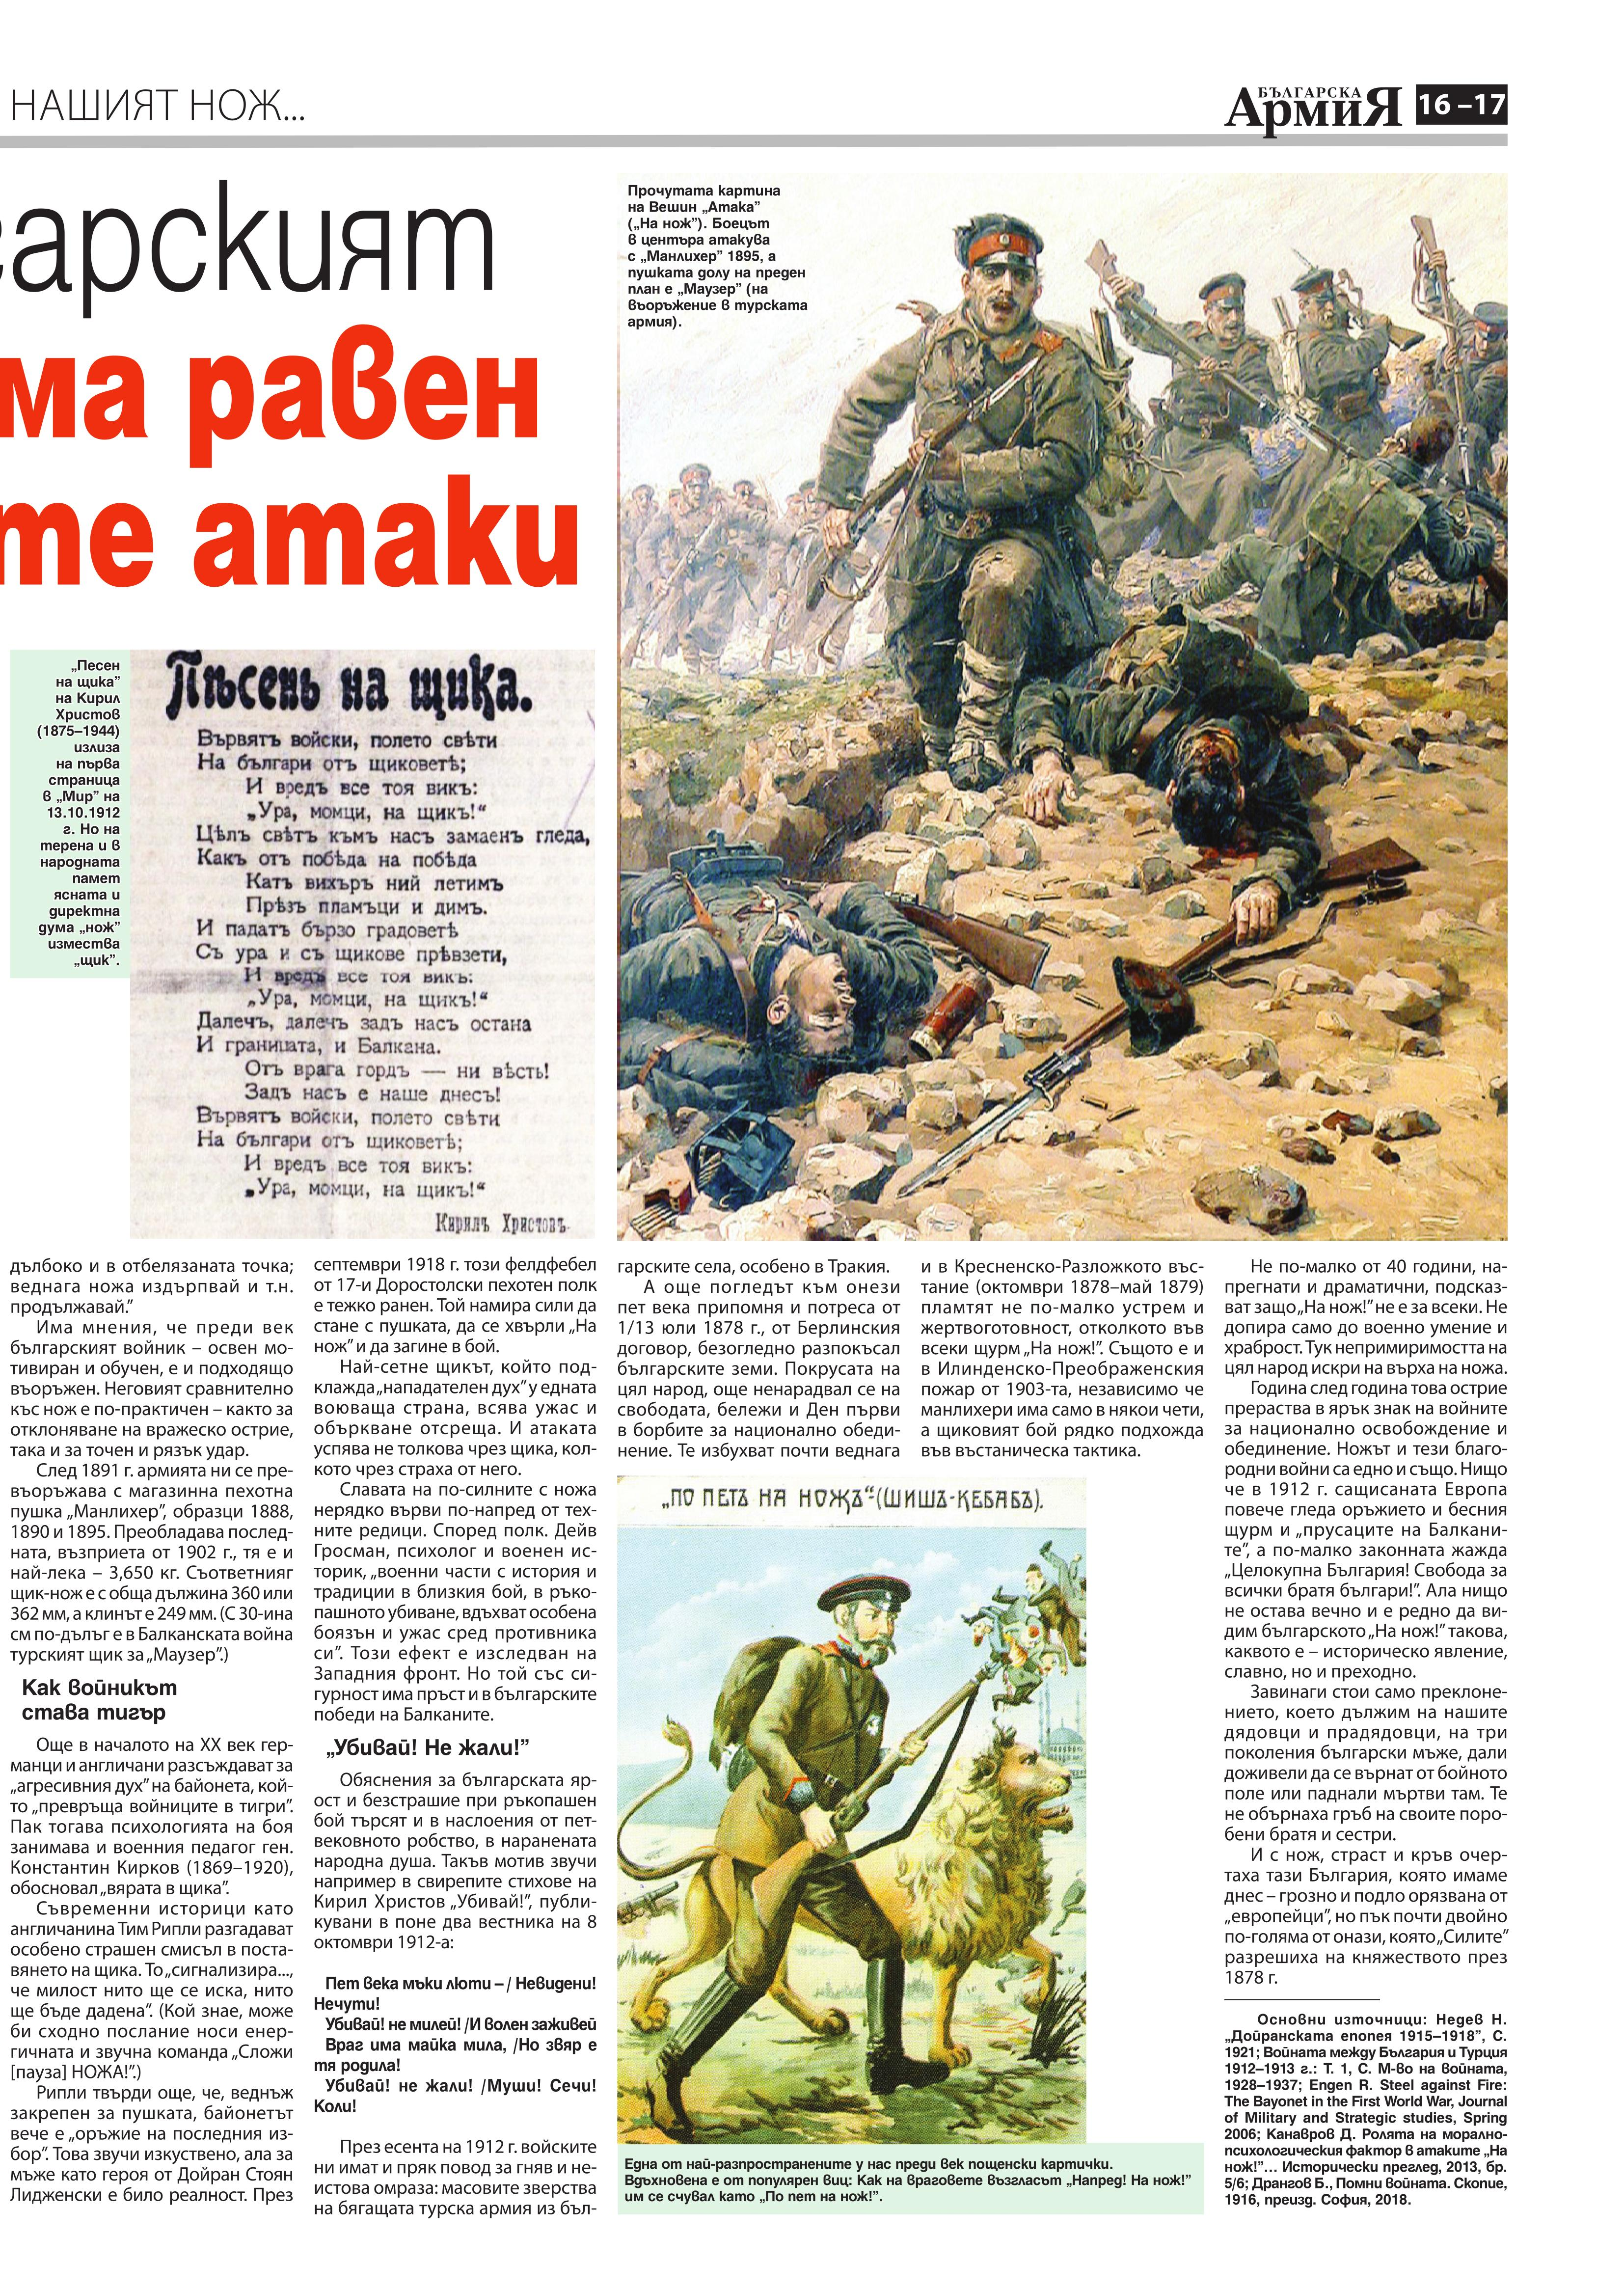 https://armymedia.bg/wp-content/uploads/2015/06/17.page1_-126.jpg